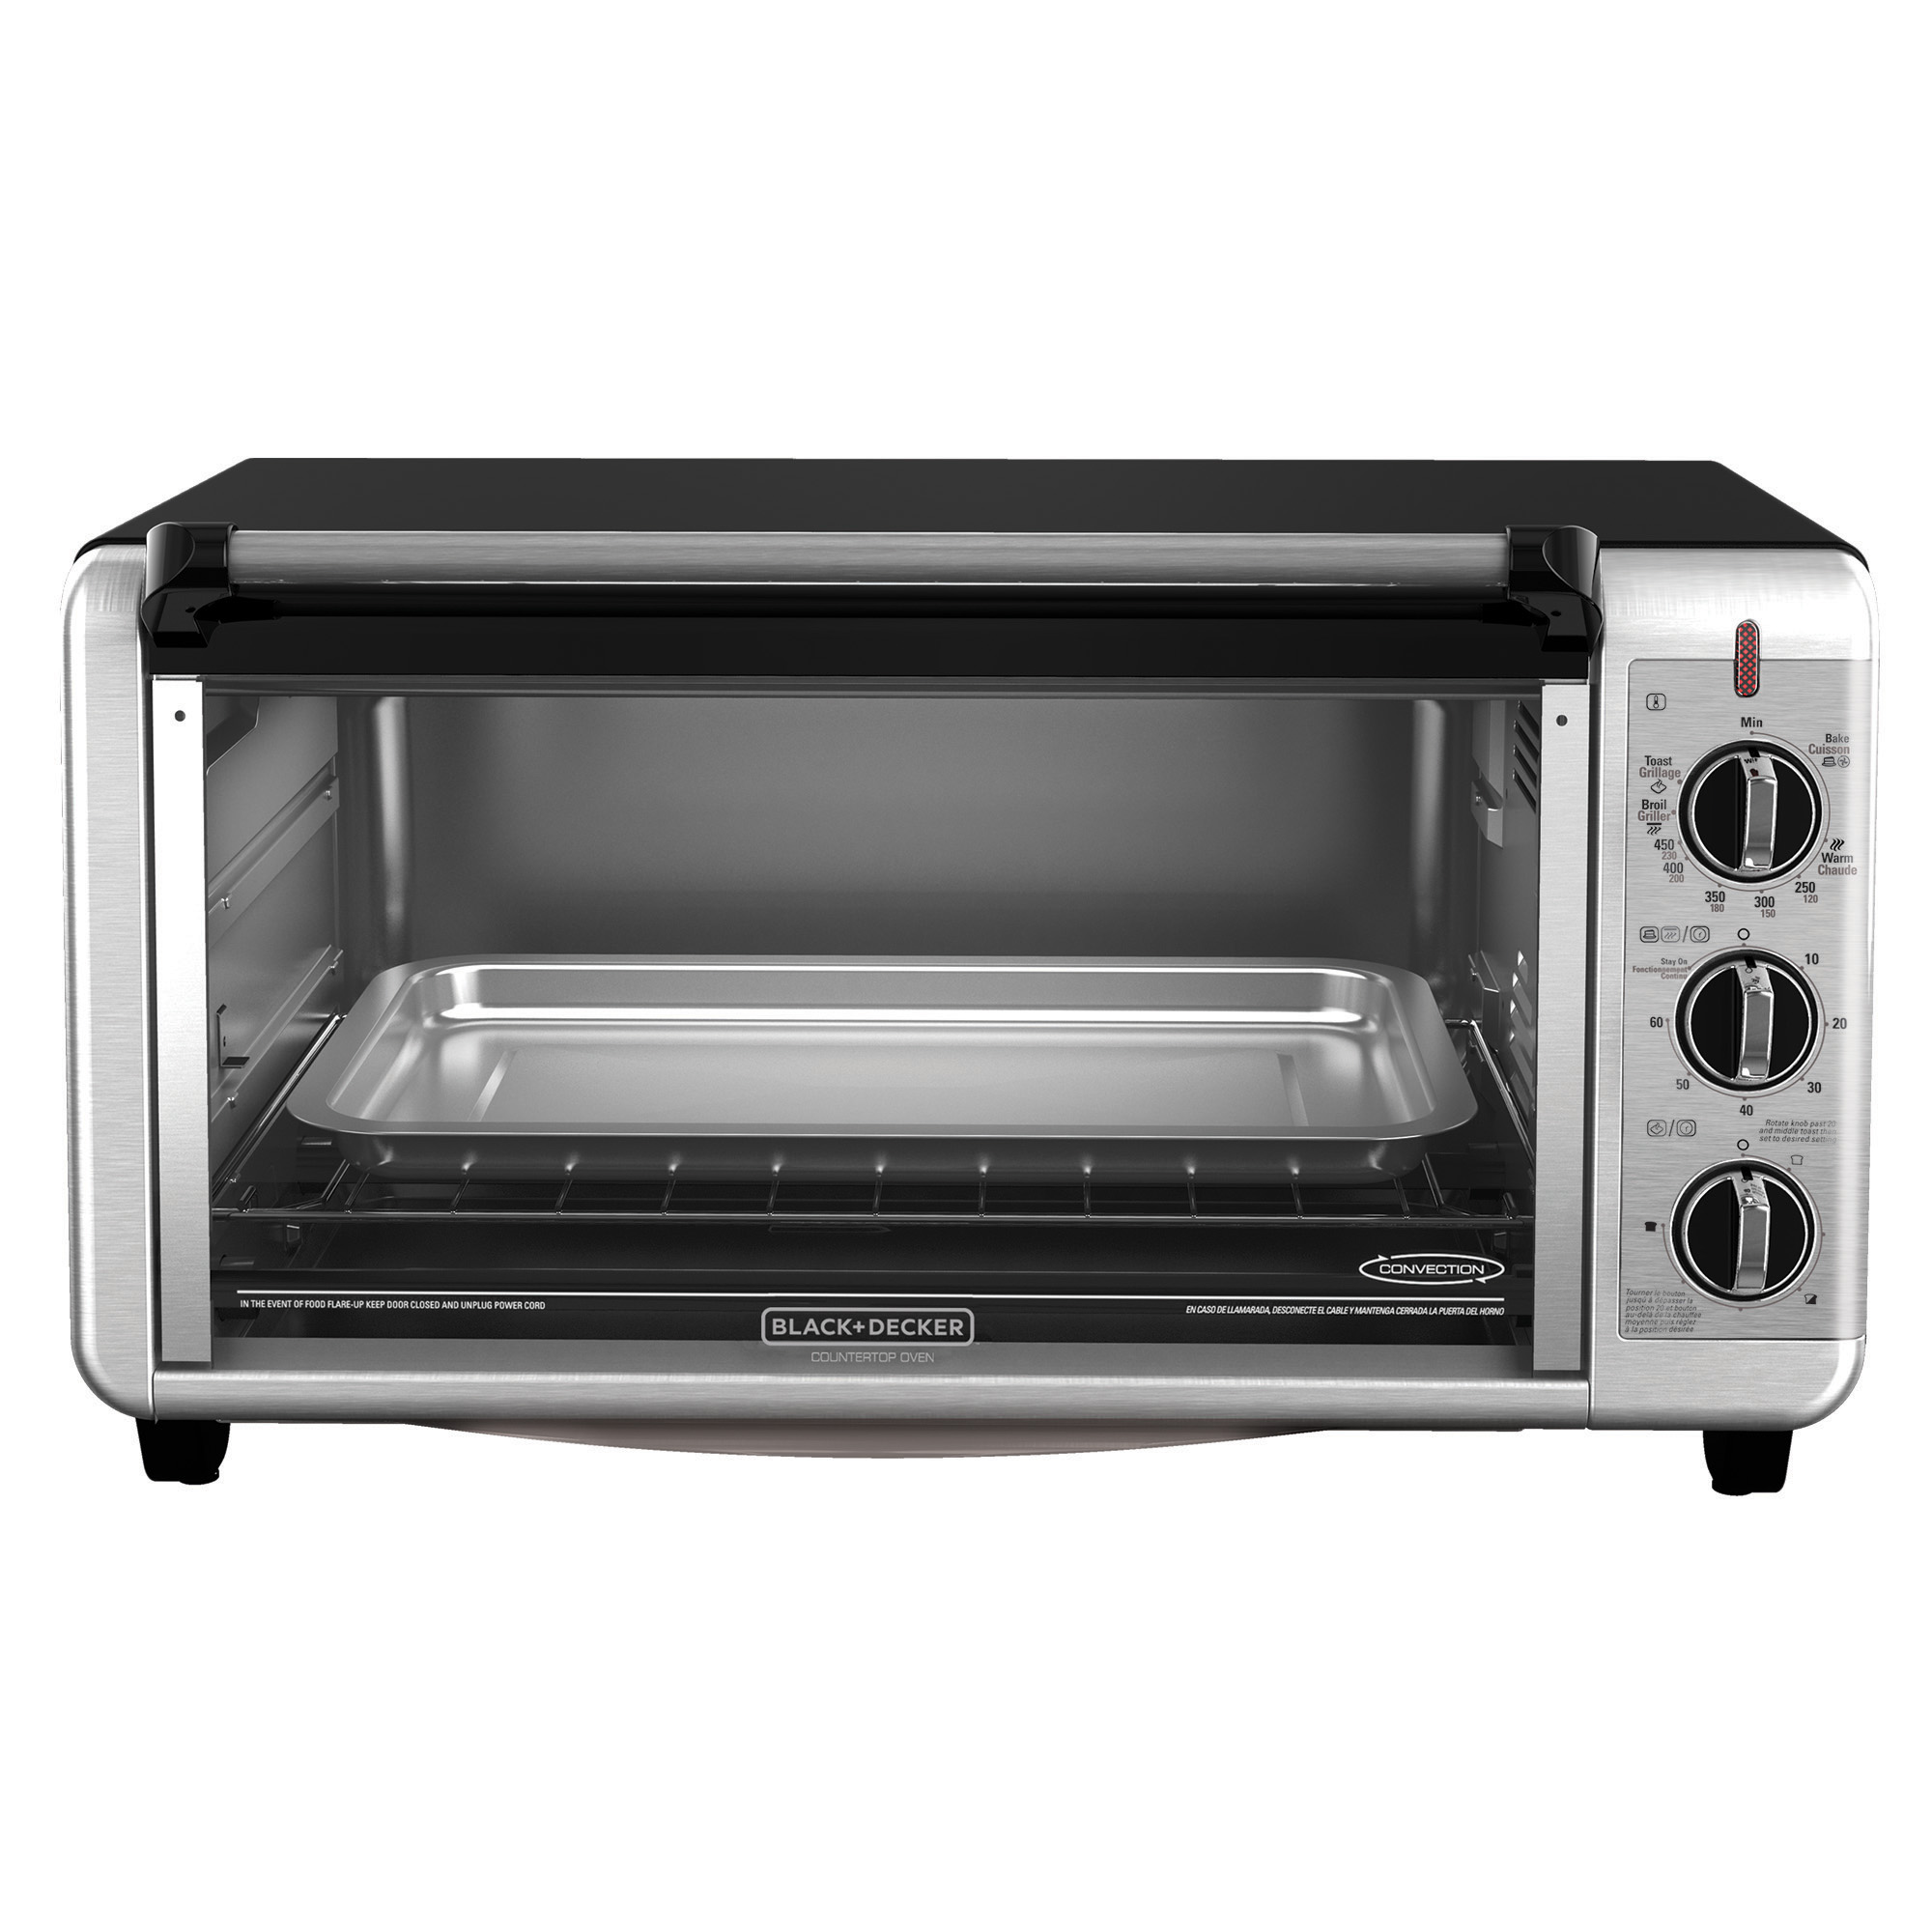 TO3260XSBDprd4_HR.ashx?h=412&la=en&mh=412&mw=430&w=412 convection and toaster ovens cooking appliances black decker  at reclaimingppi.co